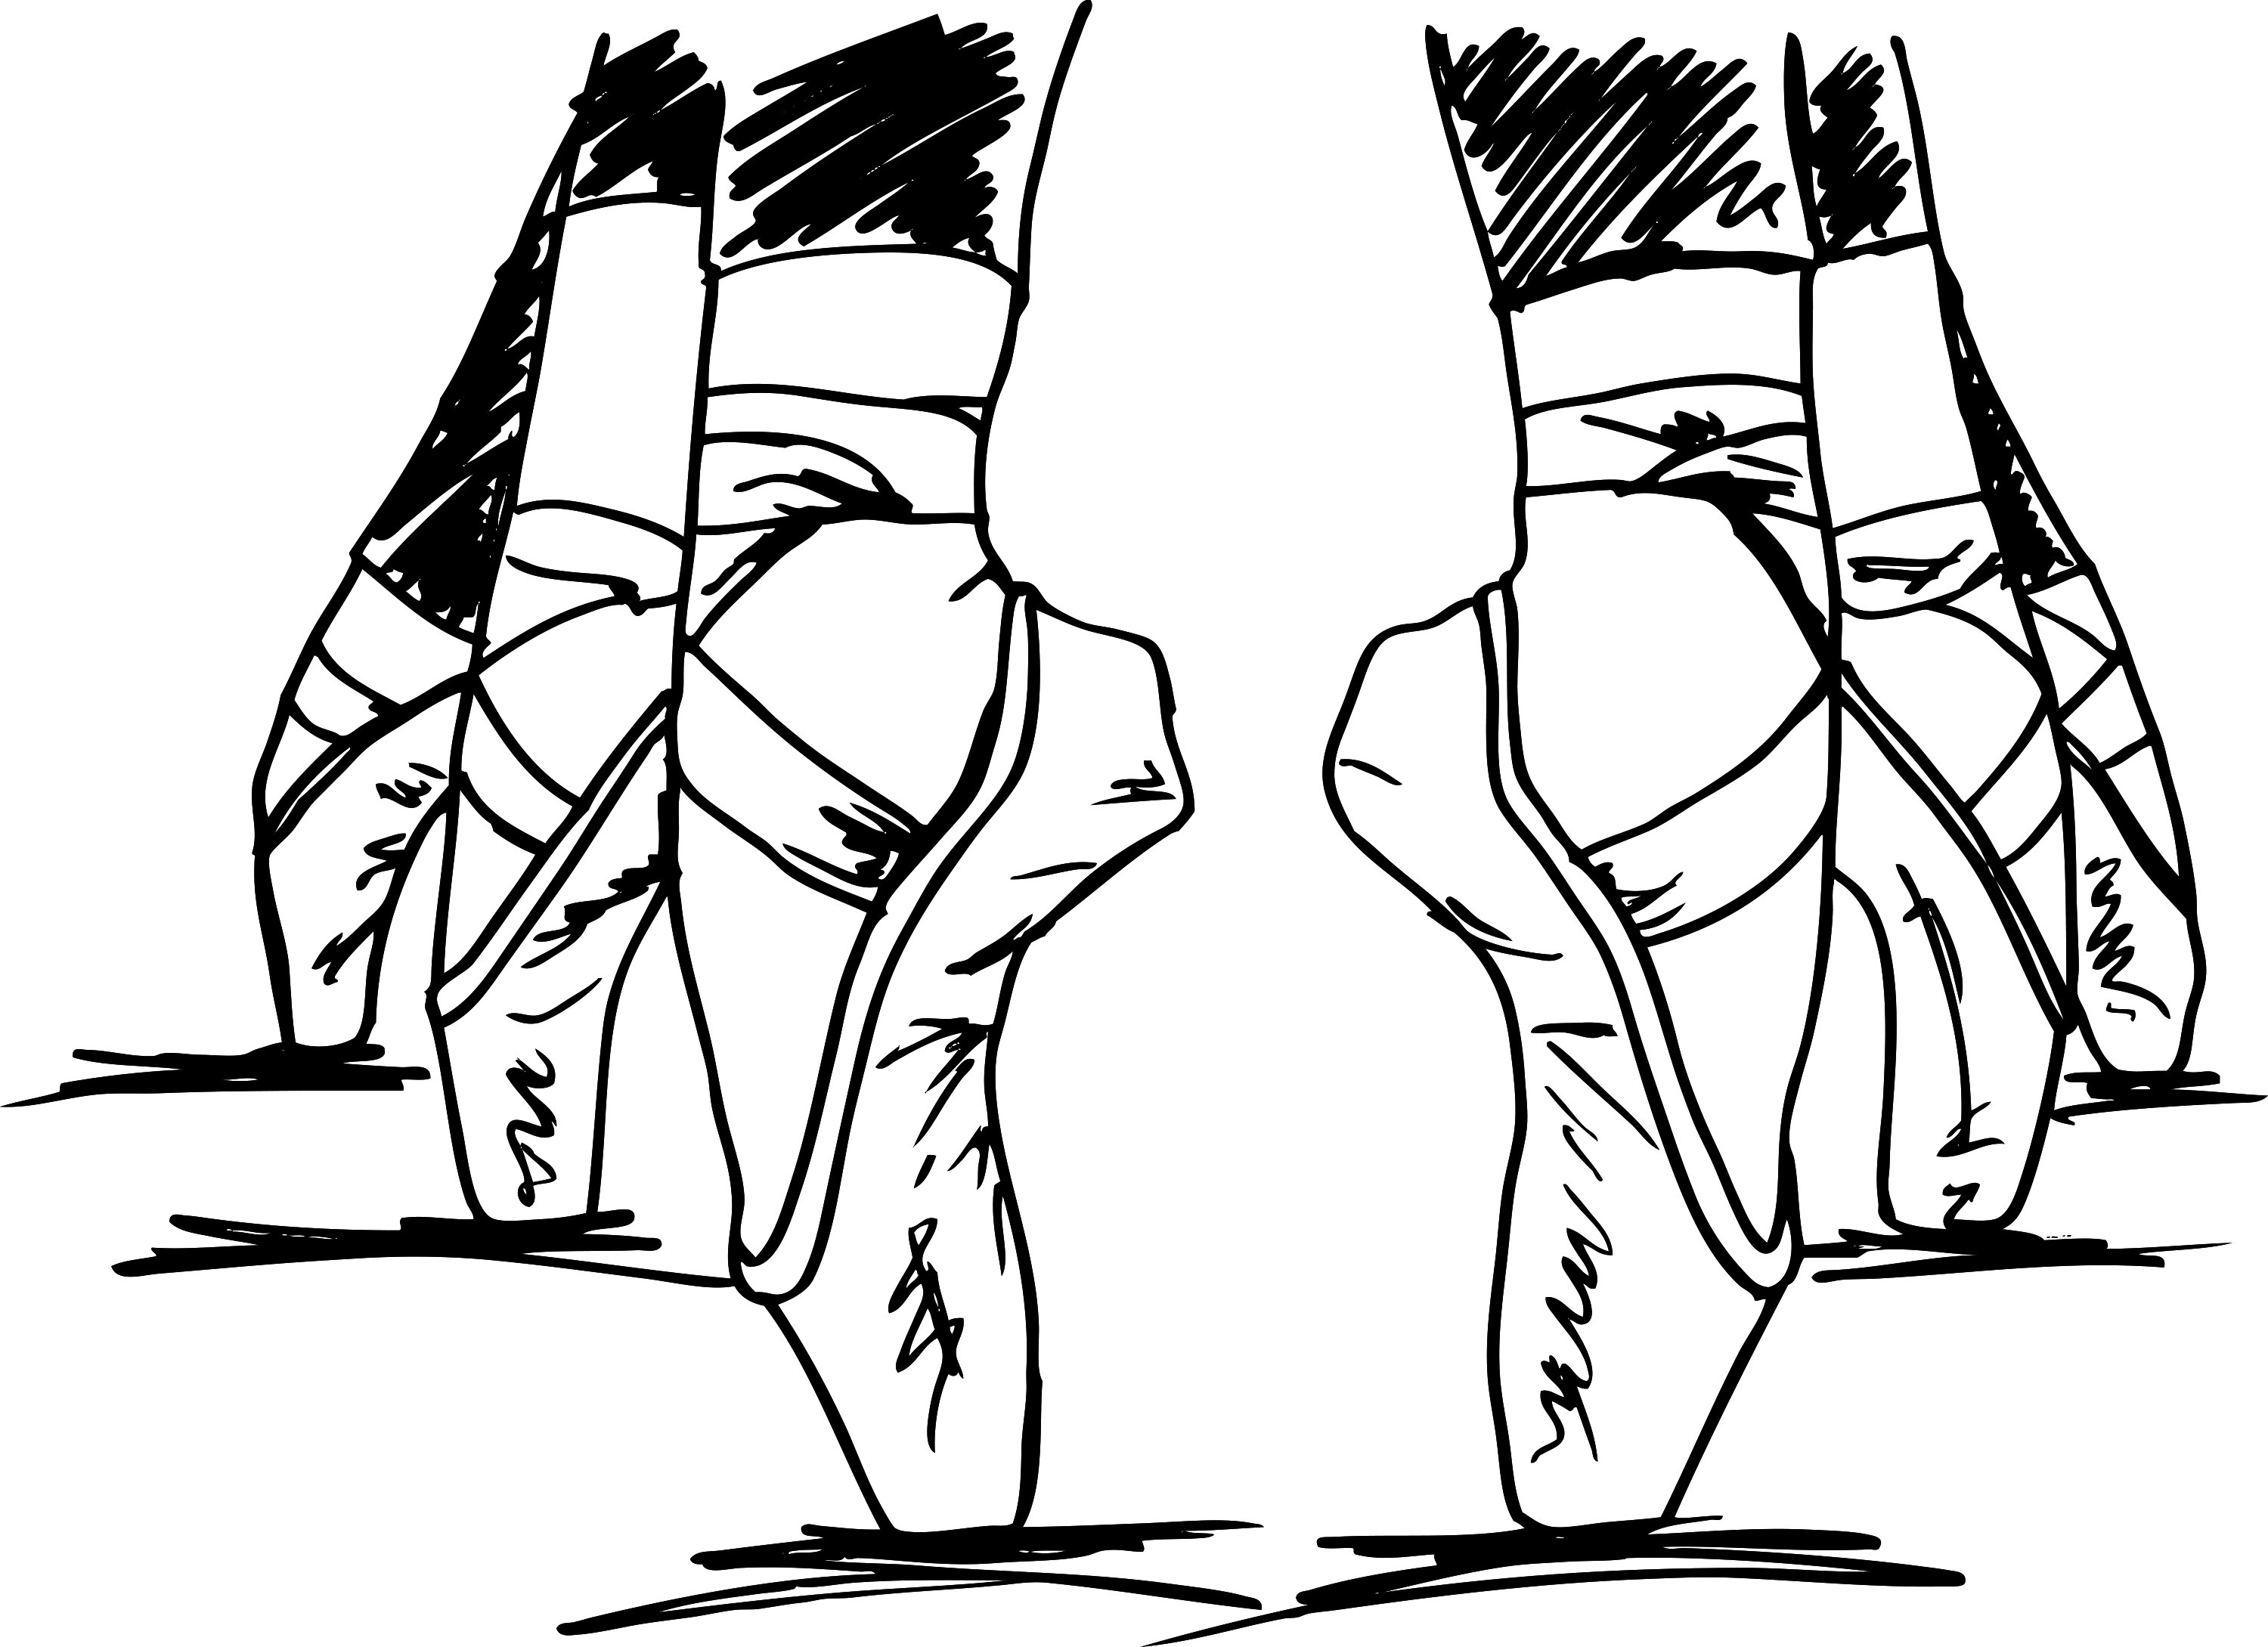 sketch-of-ballet-dancers-feet-vector-illustration_GJJCafd__L.jpg